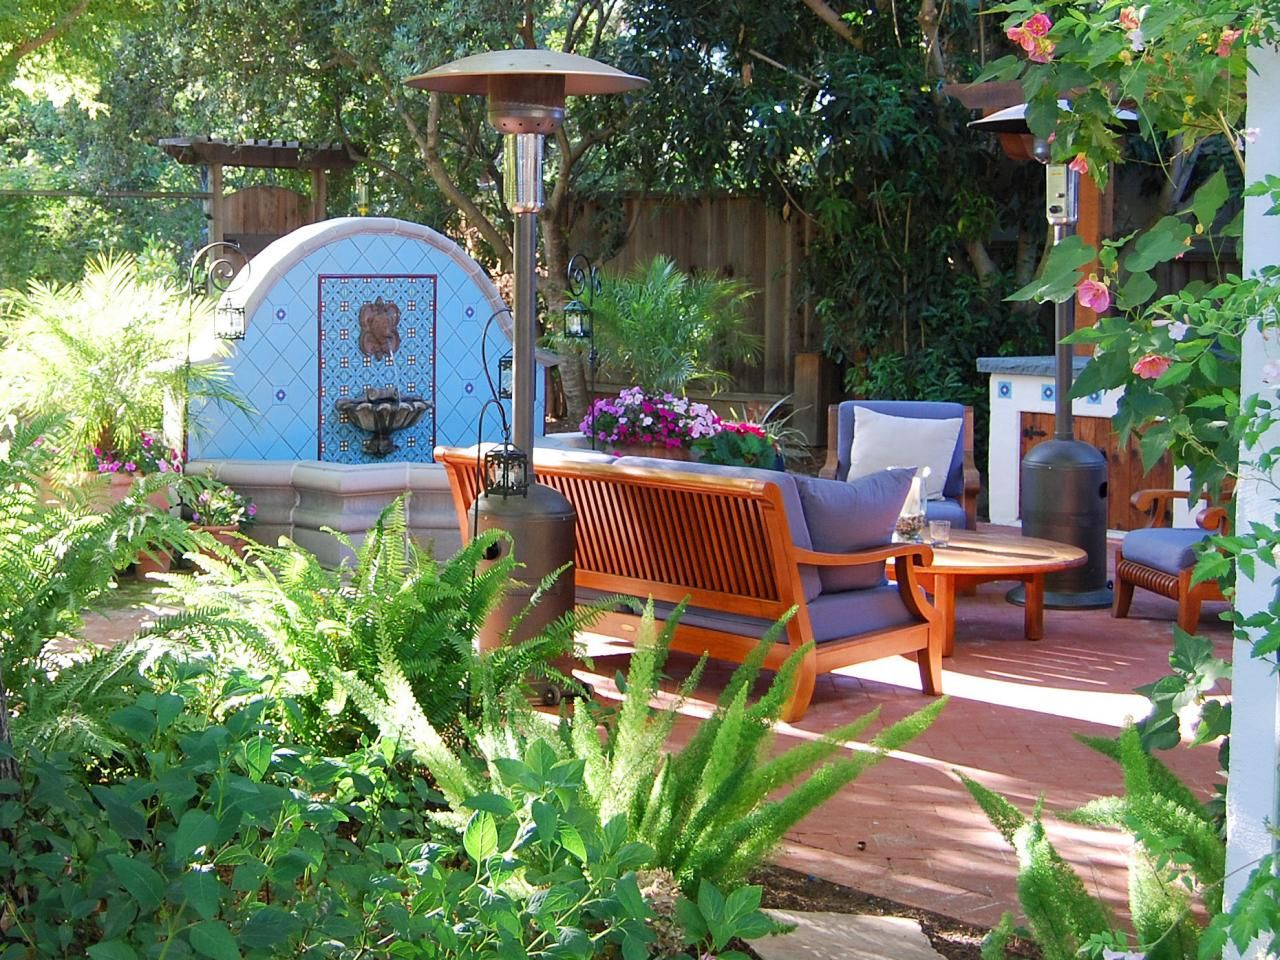 Mediterranean Style Outdoor Sitting Area With Blue Tile Fountain Outdoor Sitting Area